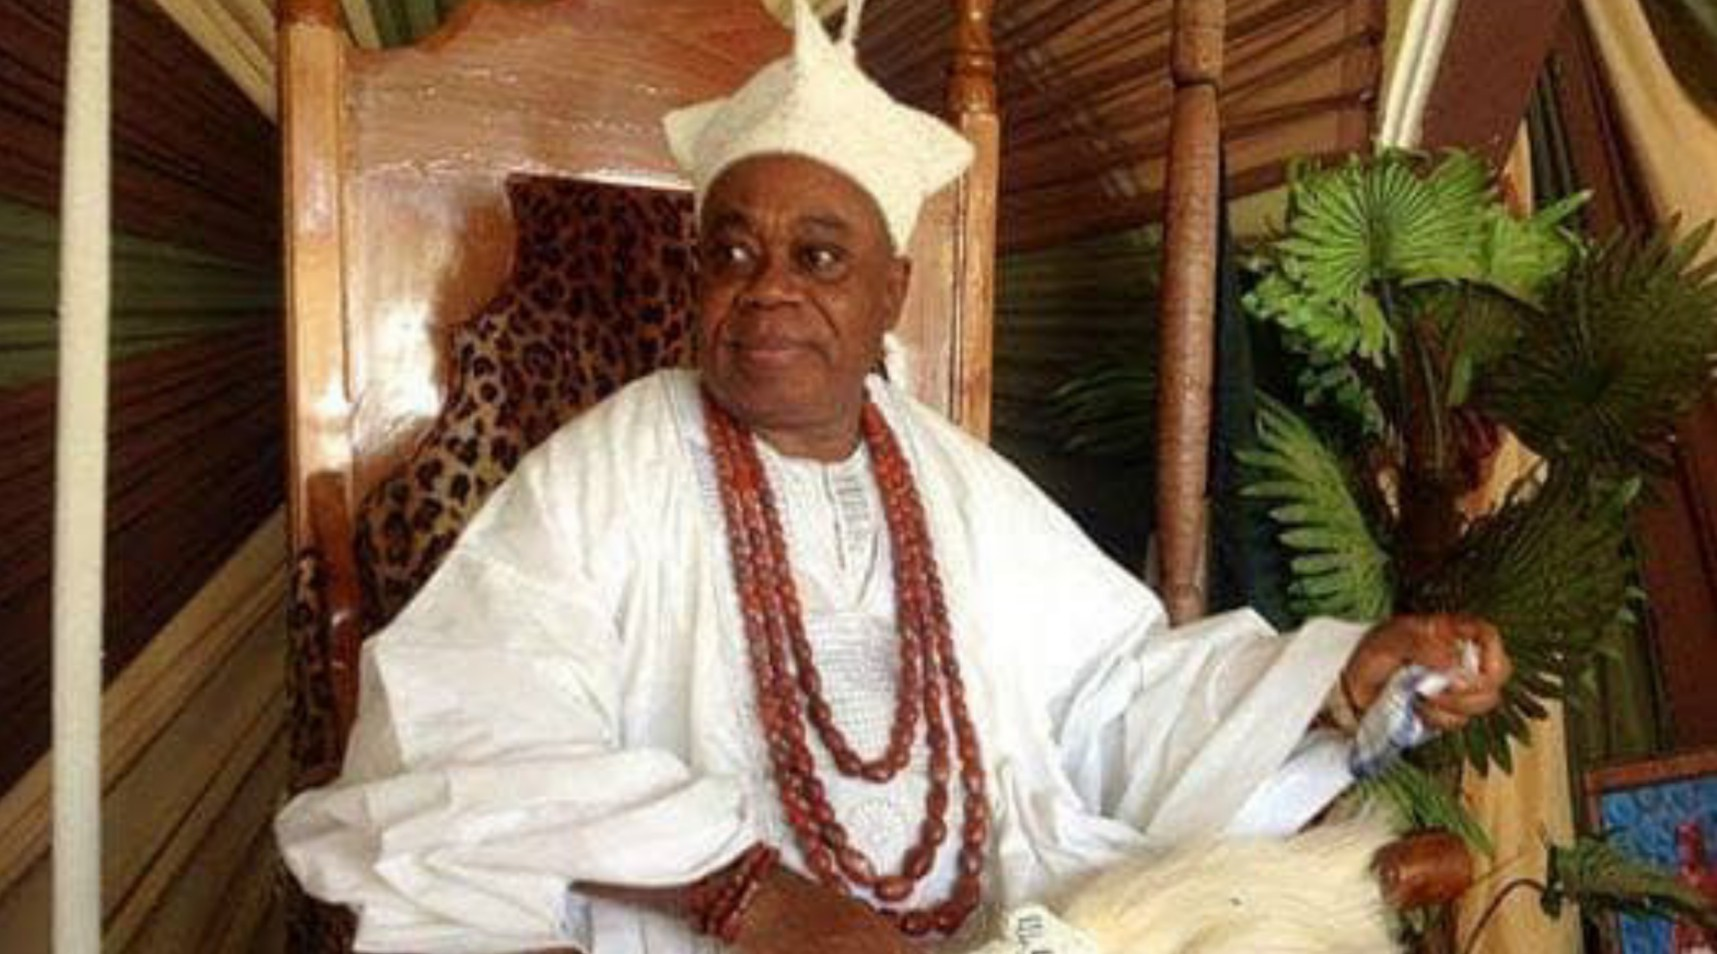 BREAKING: Suspected kidnappers kill Ondo first class monarch